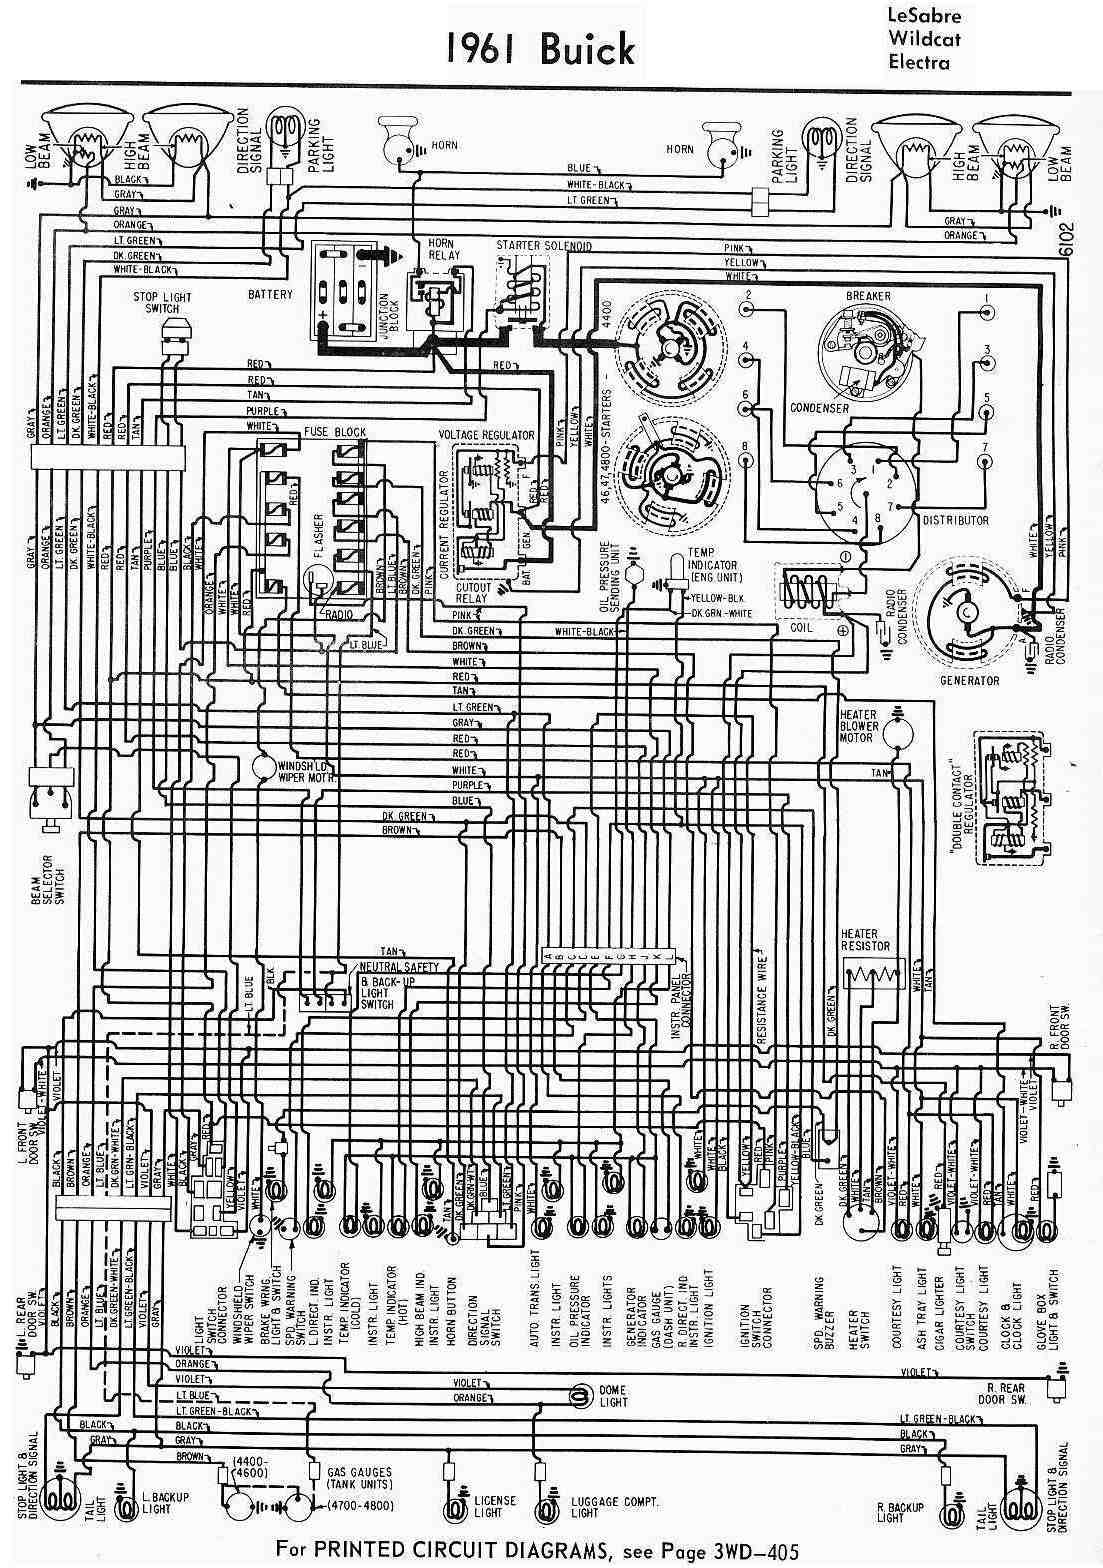 medium resolution of 1989 buick electra wiring diagram data wiring diagram 1988 buick century ac wiring